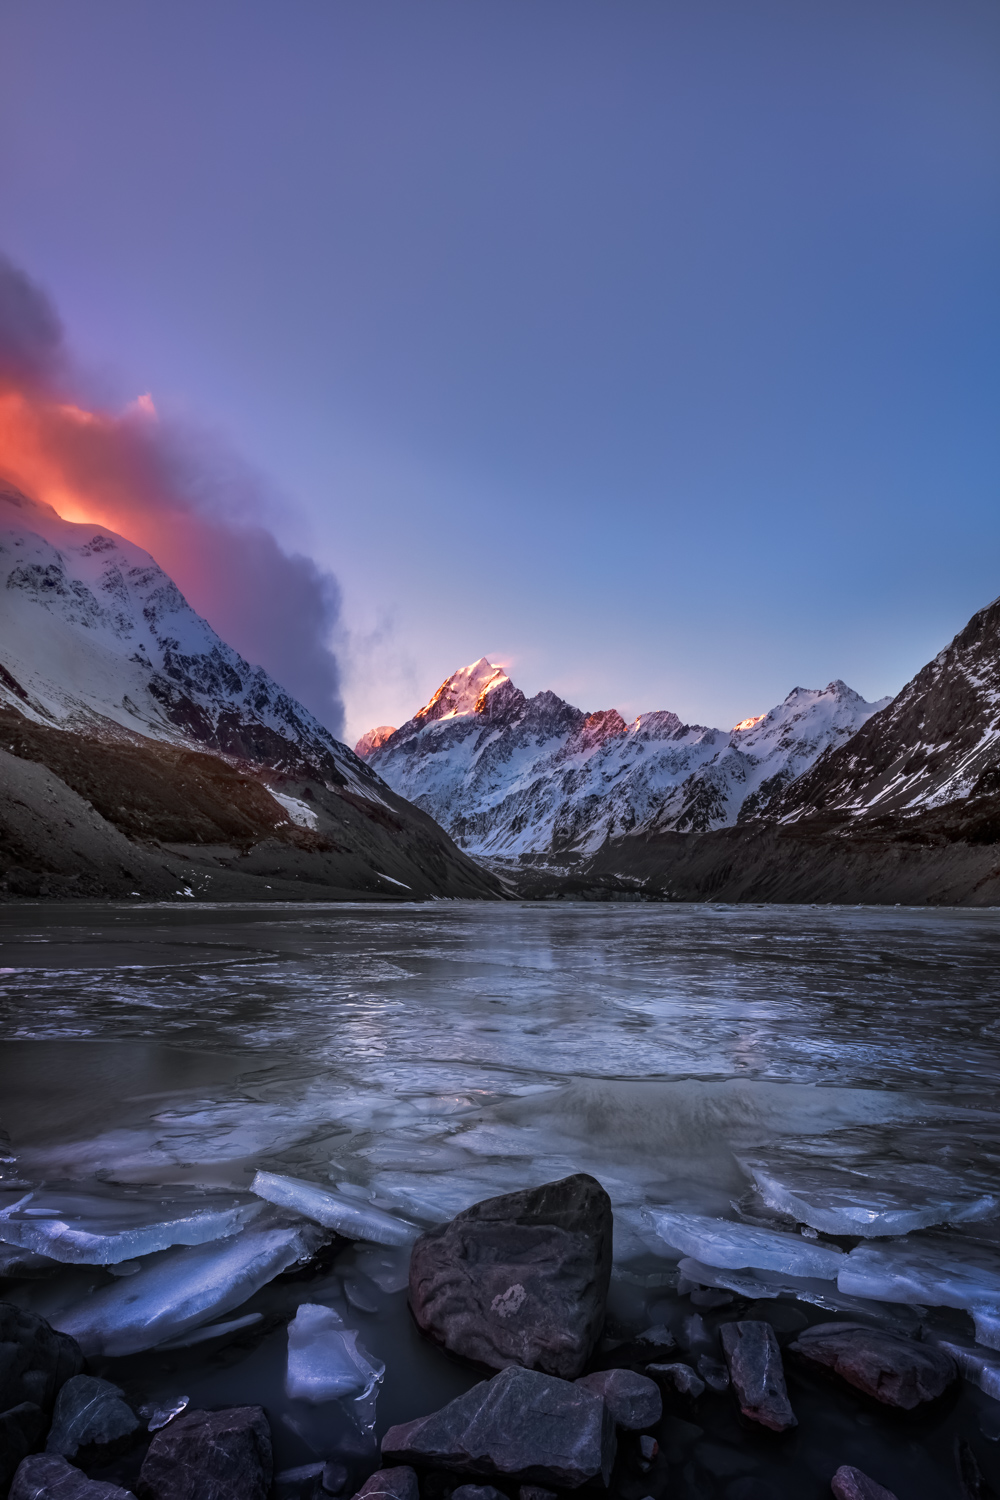 Landscape Photography Workshop - Mt Cook, Hooker Valley Track, New Zealand